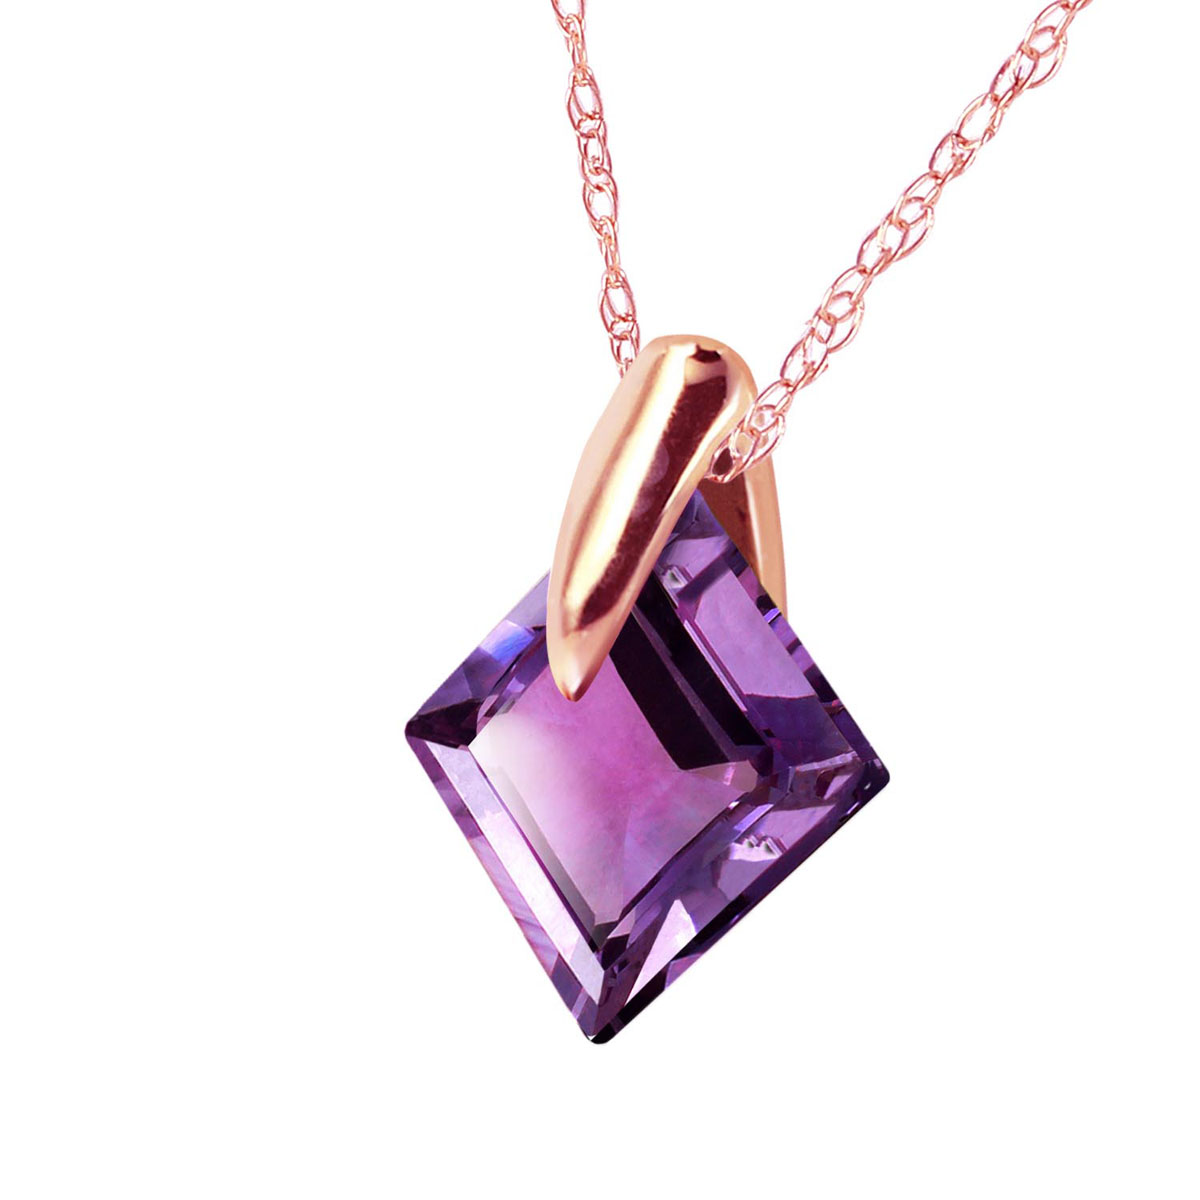 Amethyst Princess Pendant Necklace 1.16 ct in 9ct Rose Gold